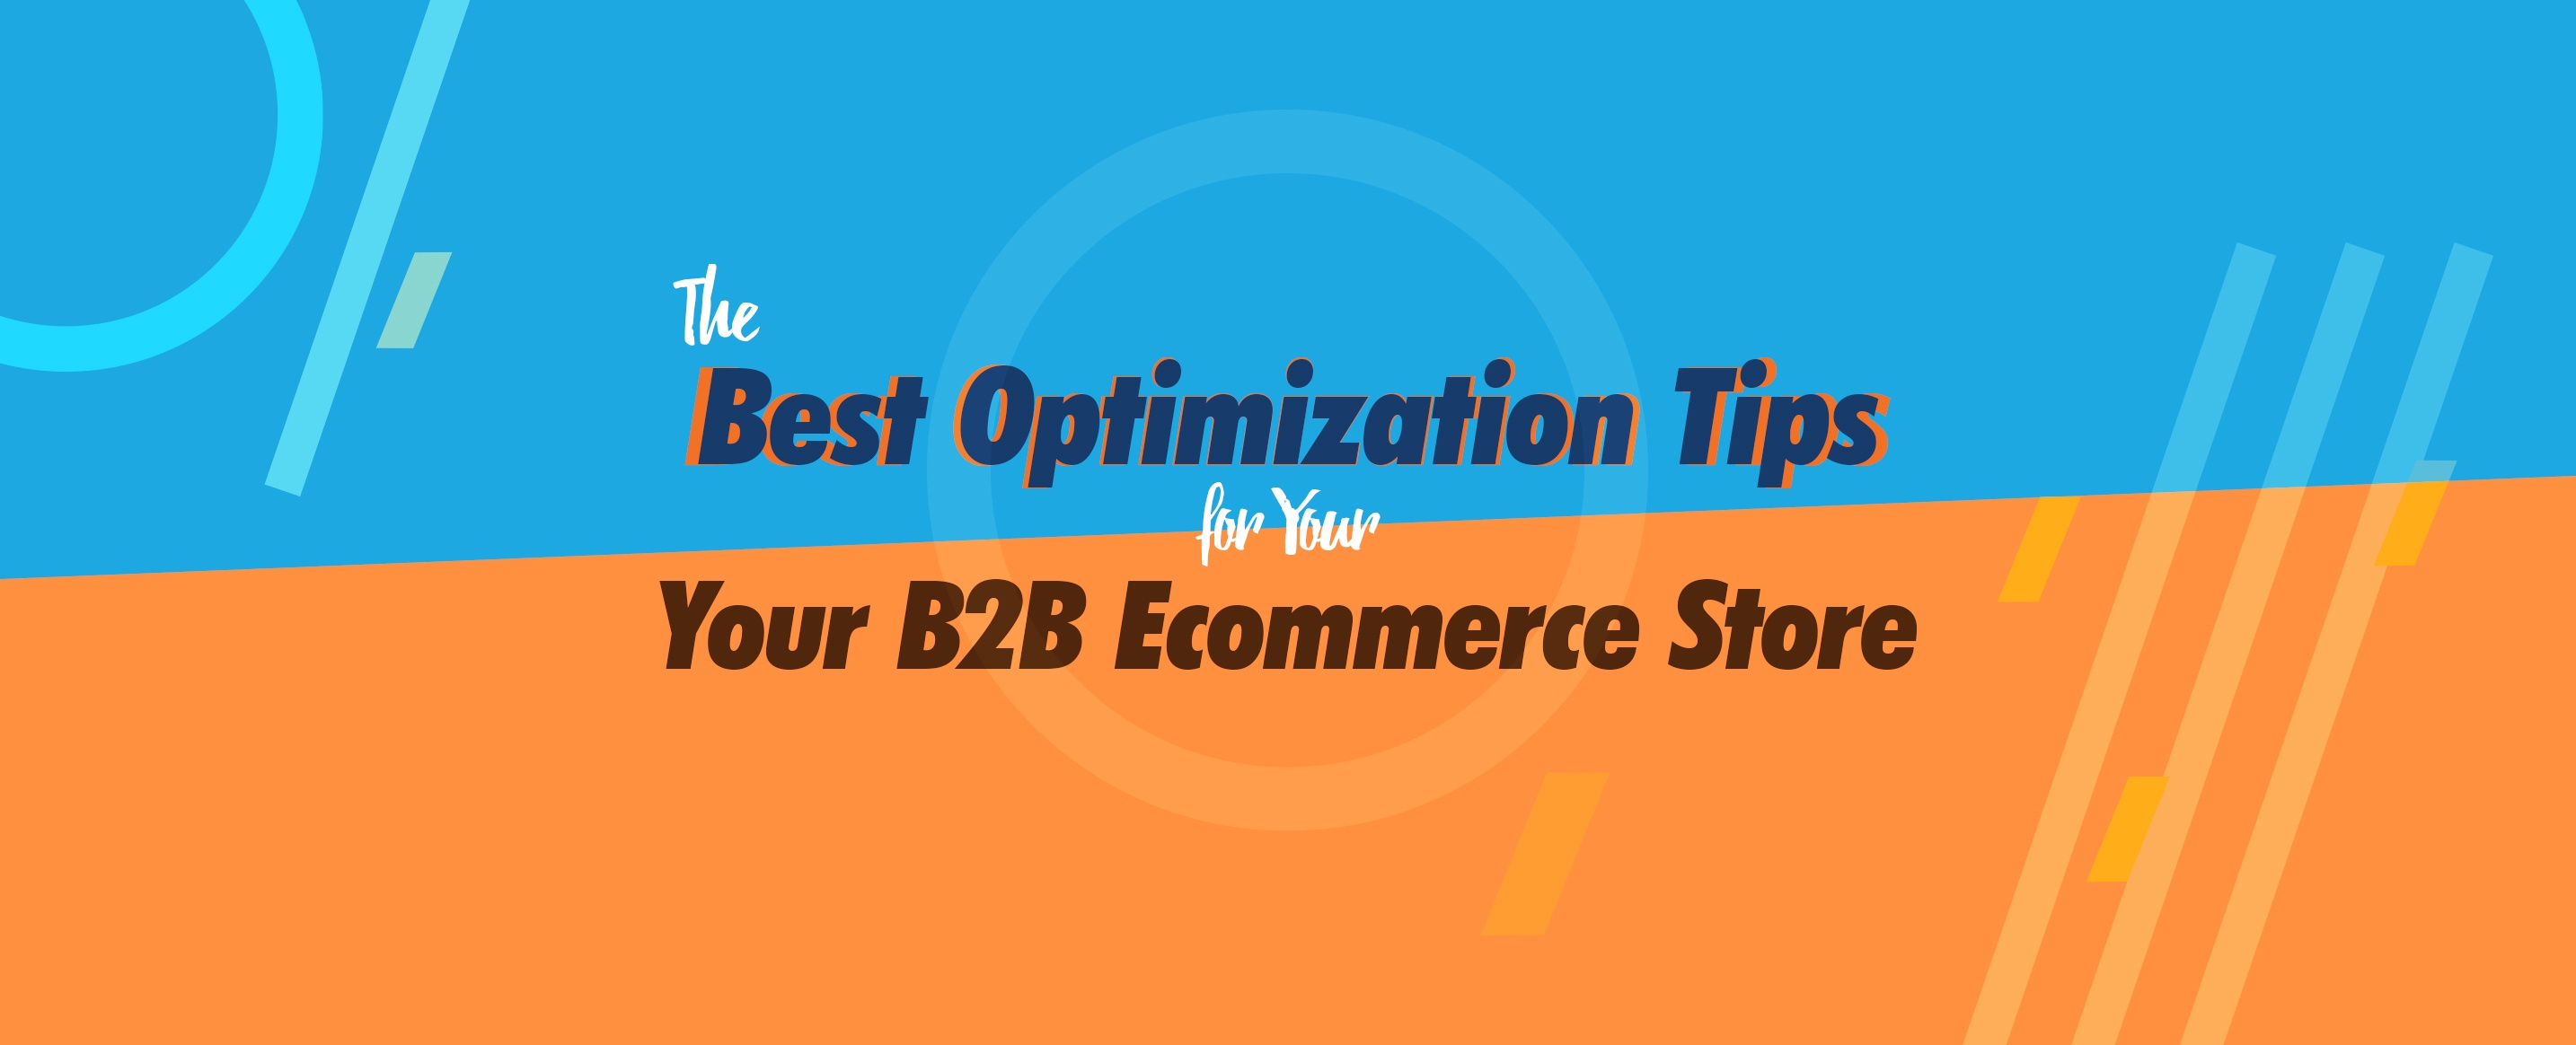 The-Best-Optimization-Tips-for-Your-B2B-Ecommerce-Store